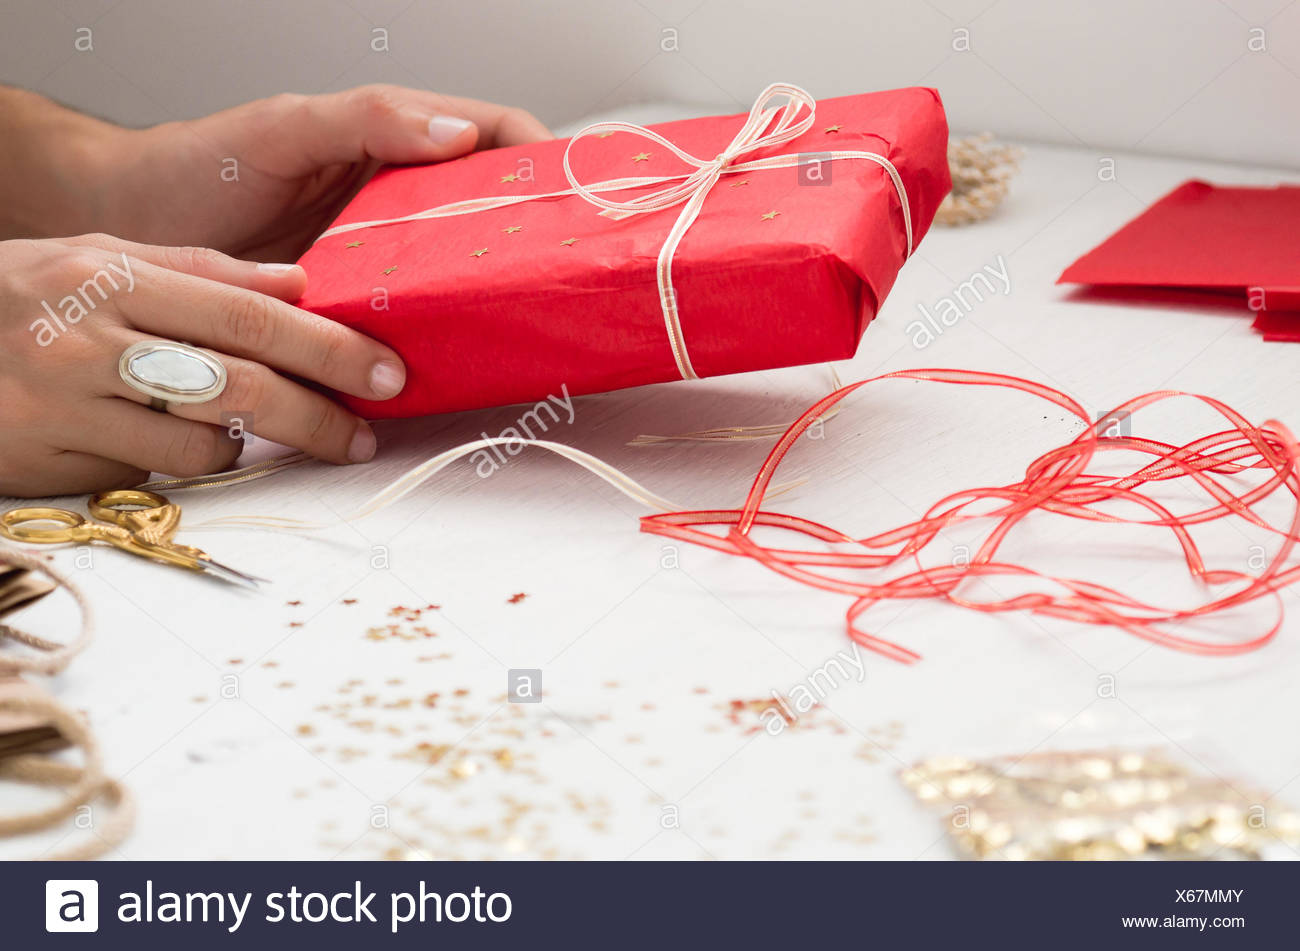 Cropped Image Of Hand Holding Gift Box On Table Stock Photo